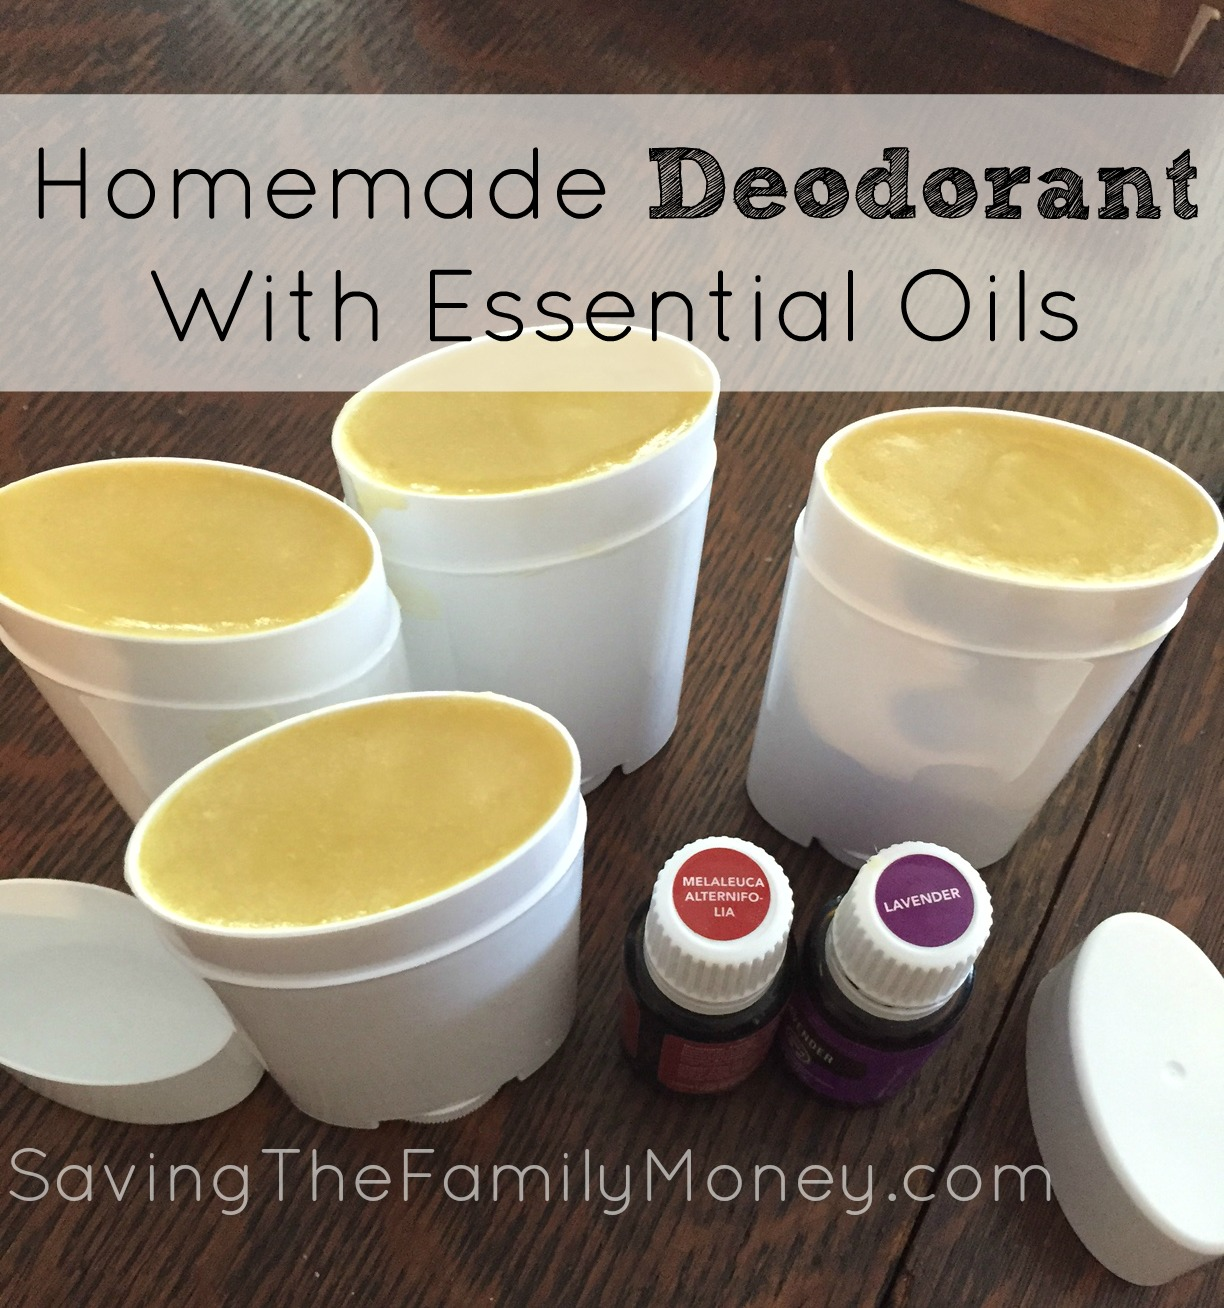 Homemade Deodorant With Essential Oils